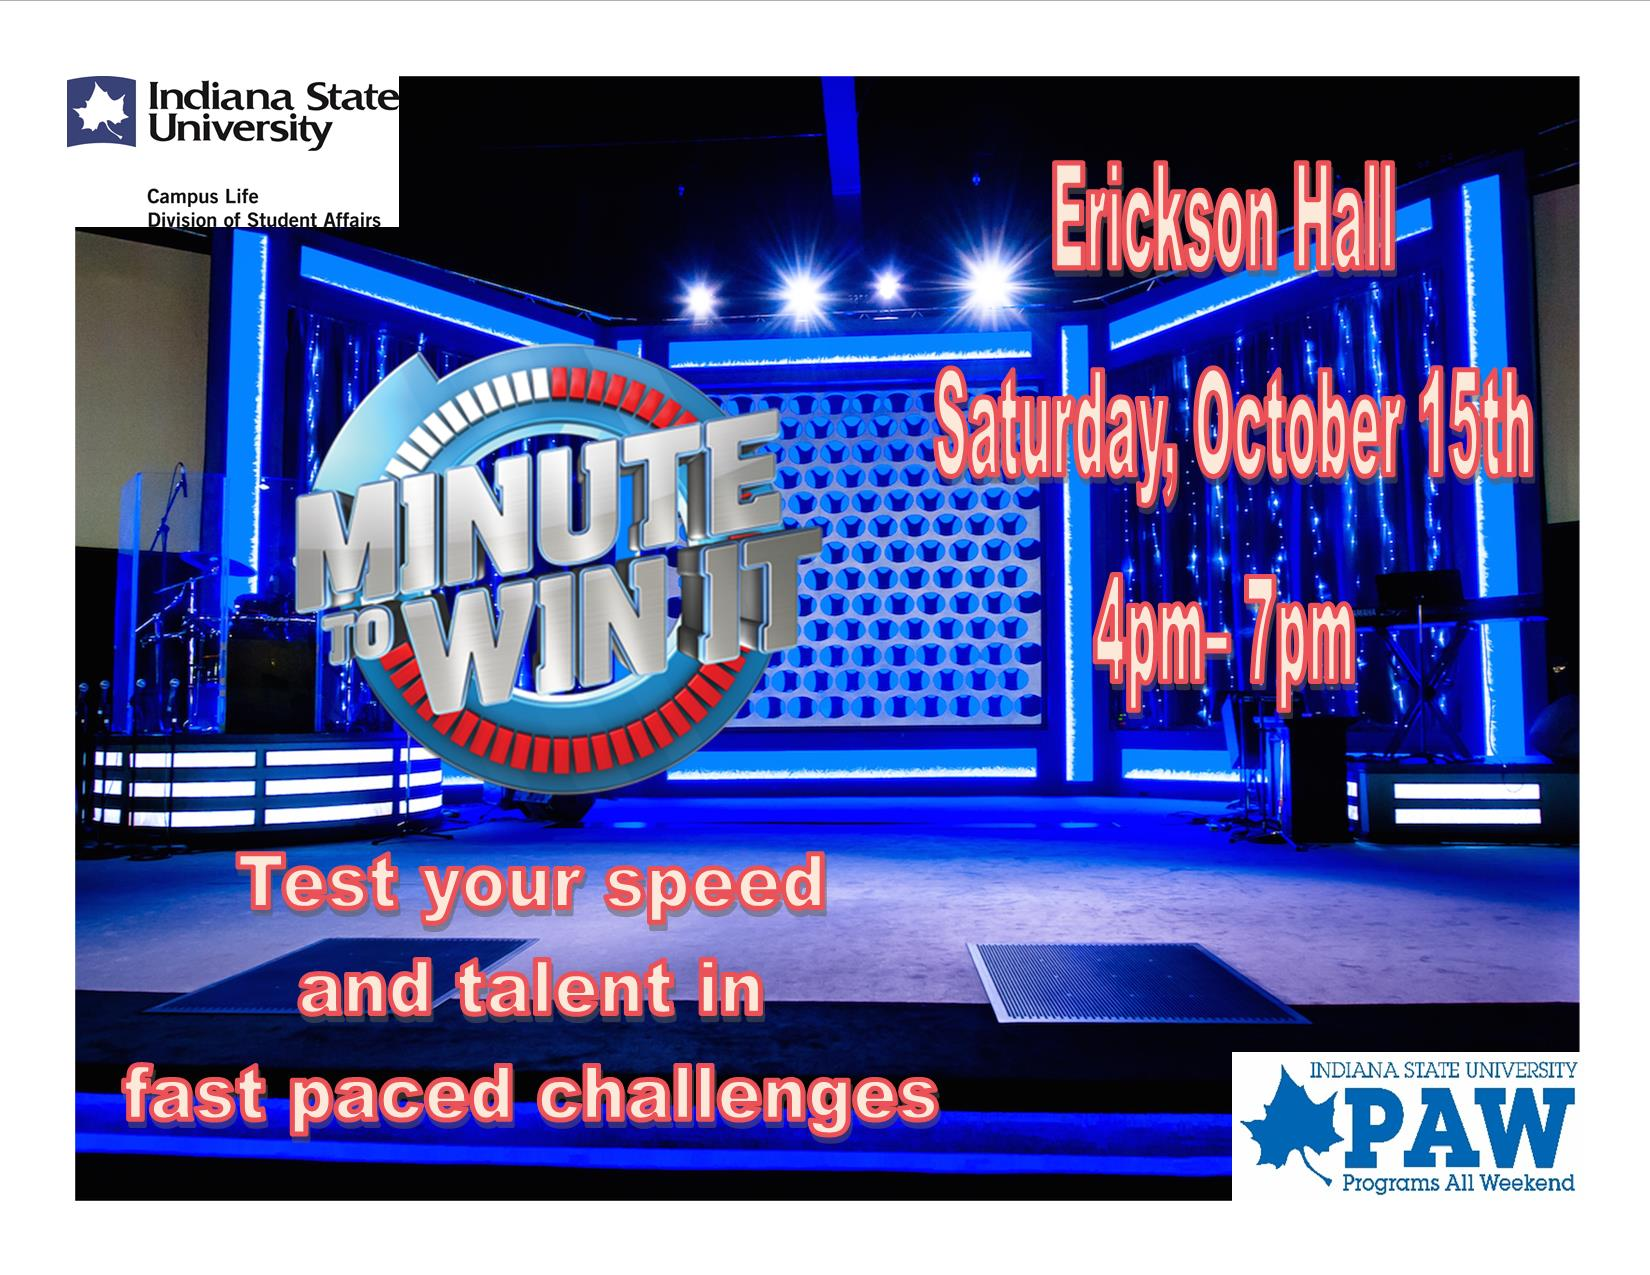 Programs All Weekend Presents Minute to Win It